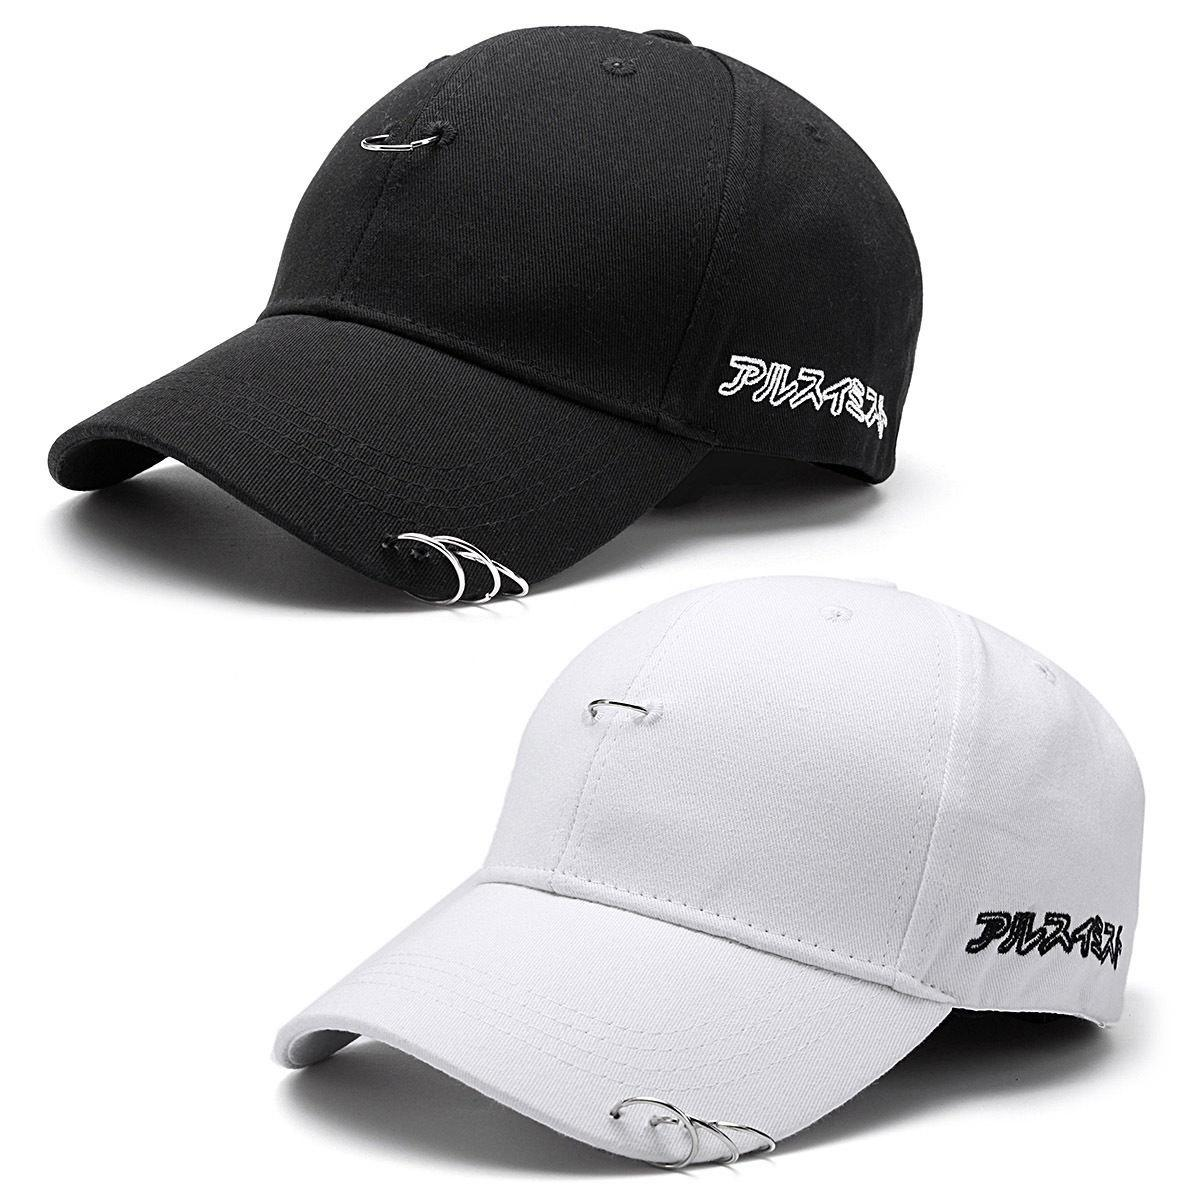 81e06ab63c3be 2019 Baseball Cap Unisex Solid Ring Safety Pin Curved Hats Baseball Cap Men  Women Snapback Caps Casquette Gorras From Jianpin